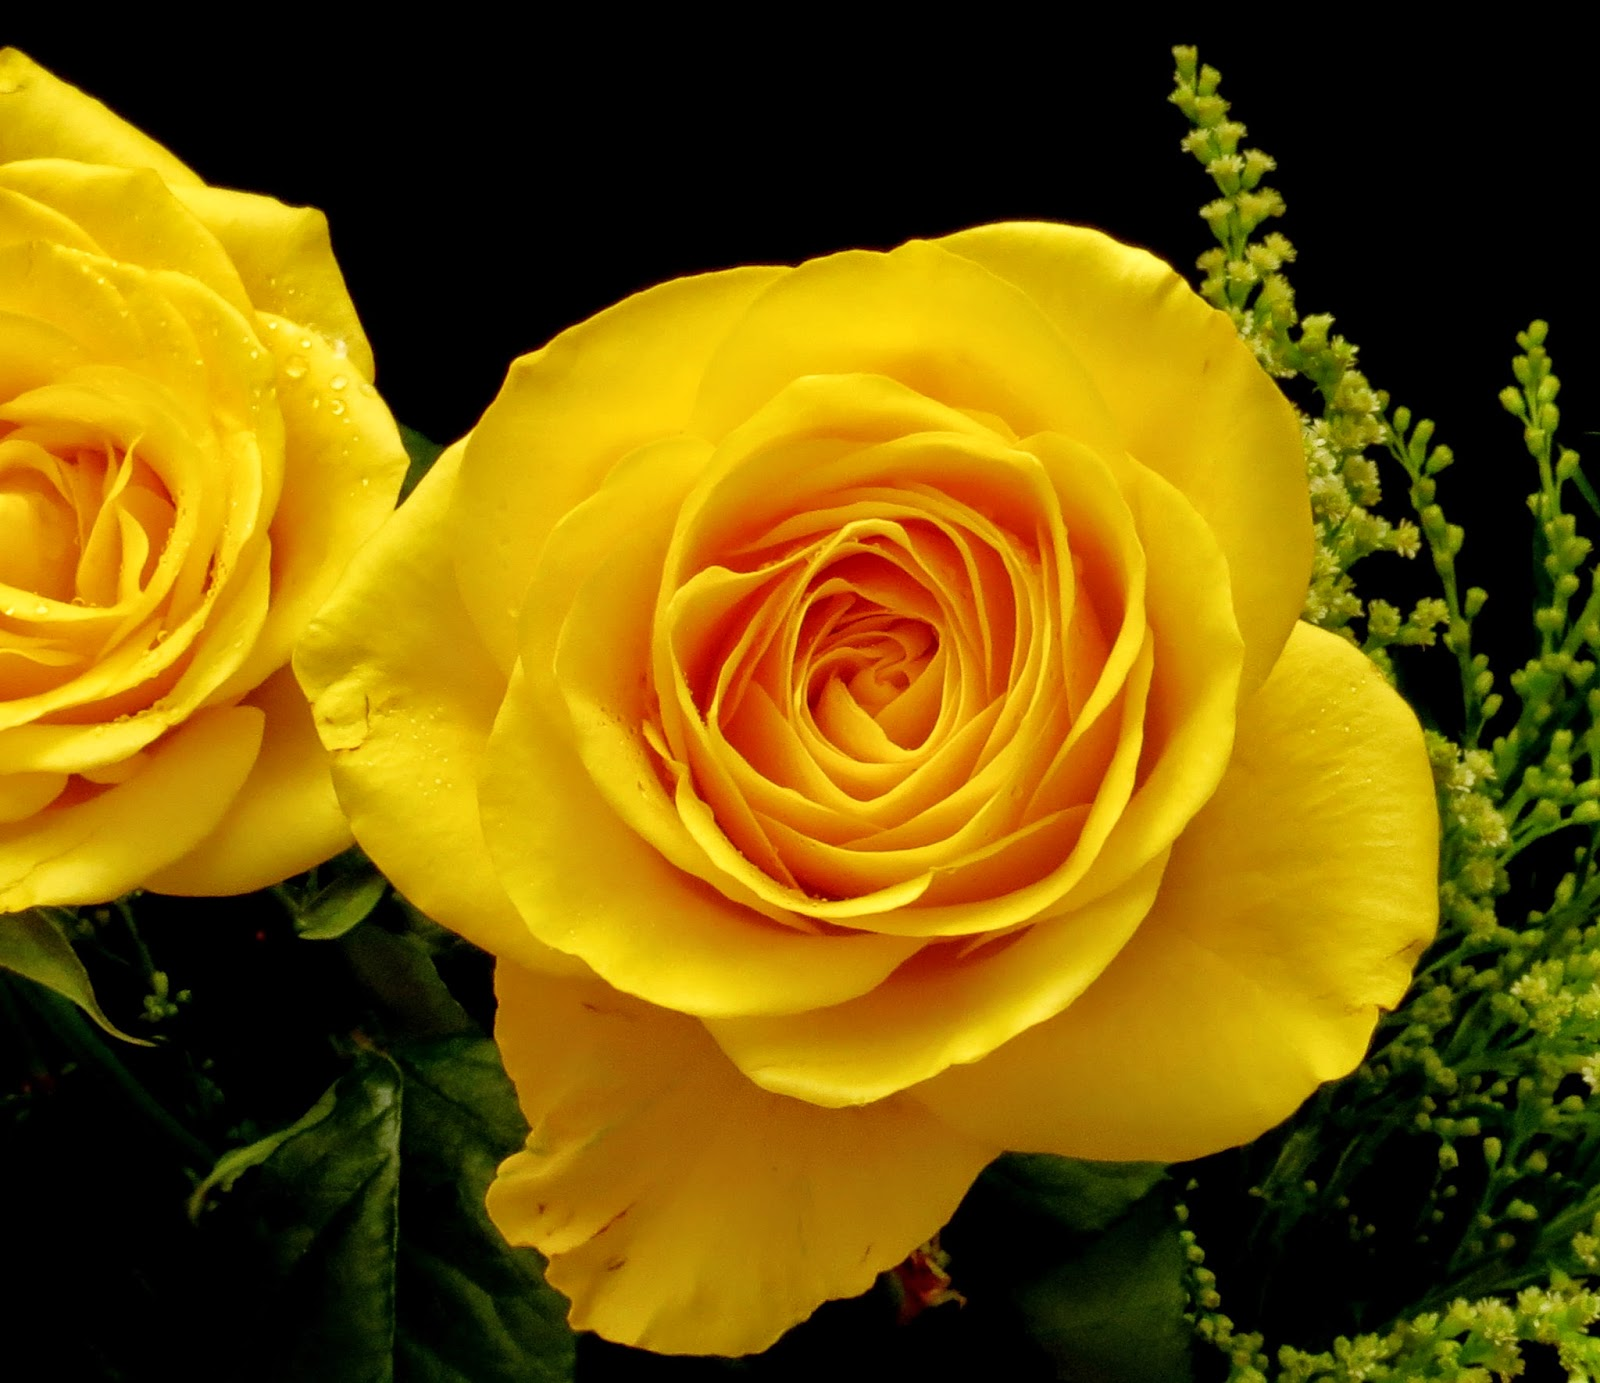 Cut Yellow Roses - Milnerton, Cape Town Photo with (non-DSLR) Canon PowerShot SX40 HS.